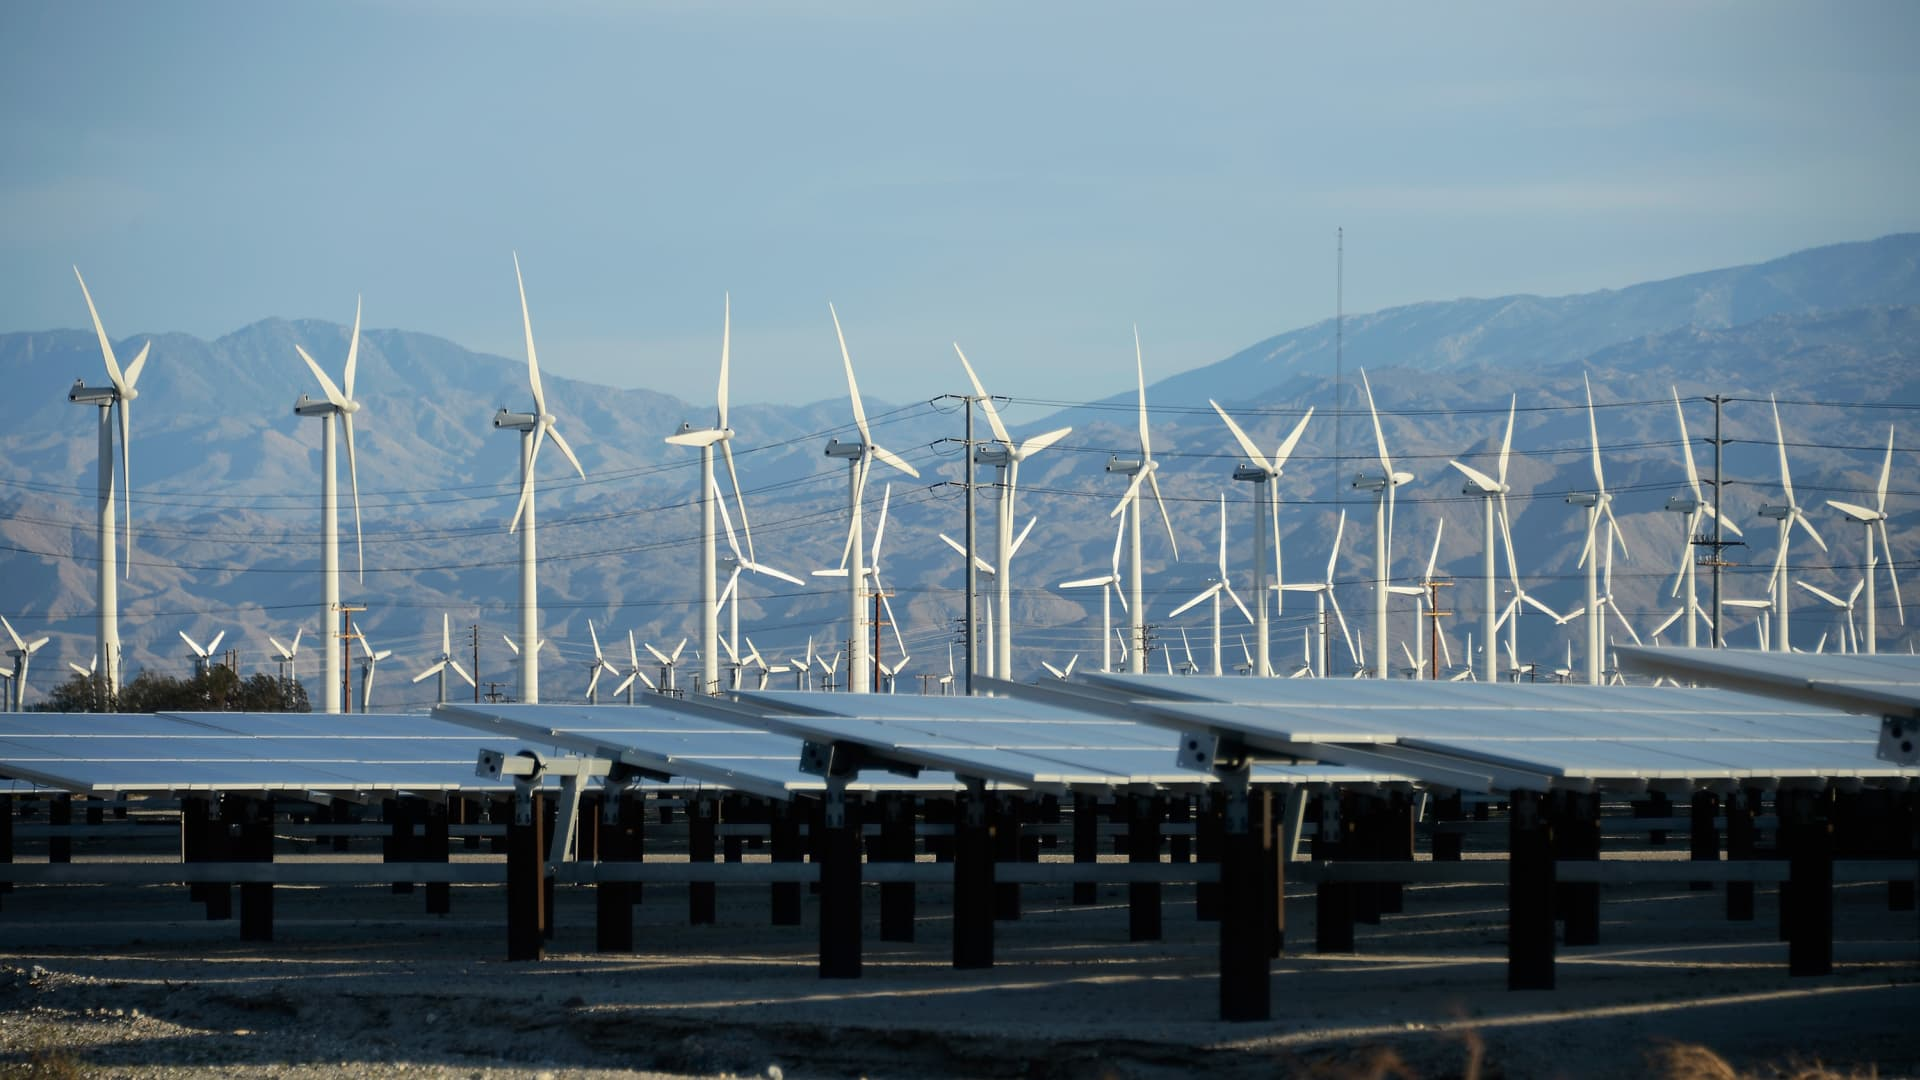 PALM SPRINGS, CA - MARCH 27:Giant wind turbines are powered by strong winds in front of solar panels on March 27, 2013 in Palm Springs, California. According to reports, California continues to lead the nation in green technology and has the lowest greenhouse gas emissions per capita, even with a growing economy and population.(Photo by Kevork Djansezian/Getty Images)